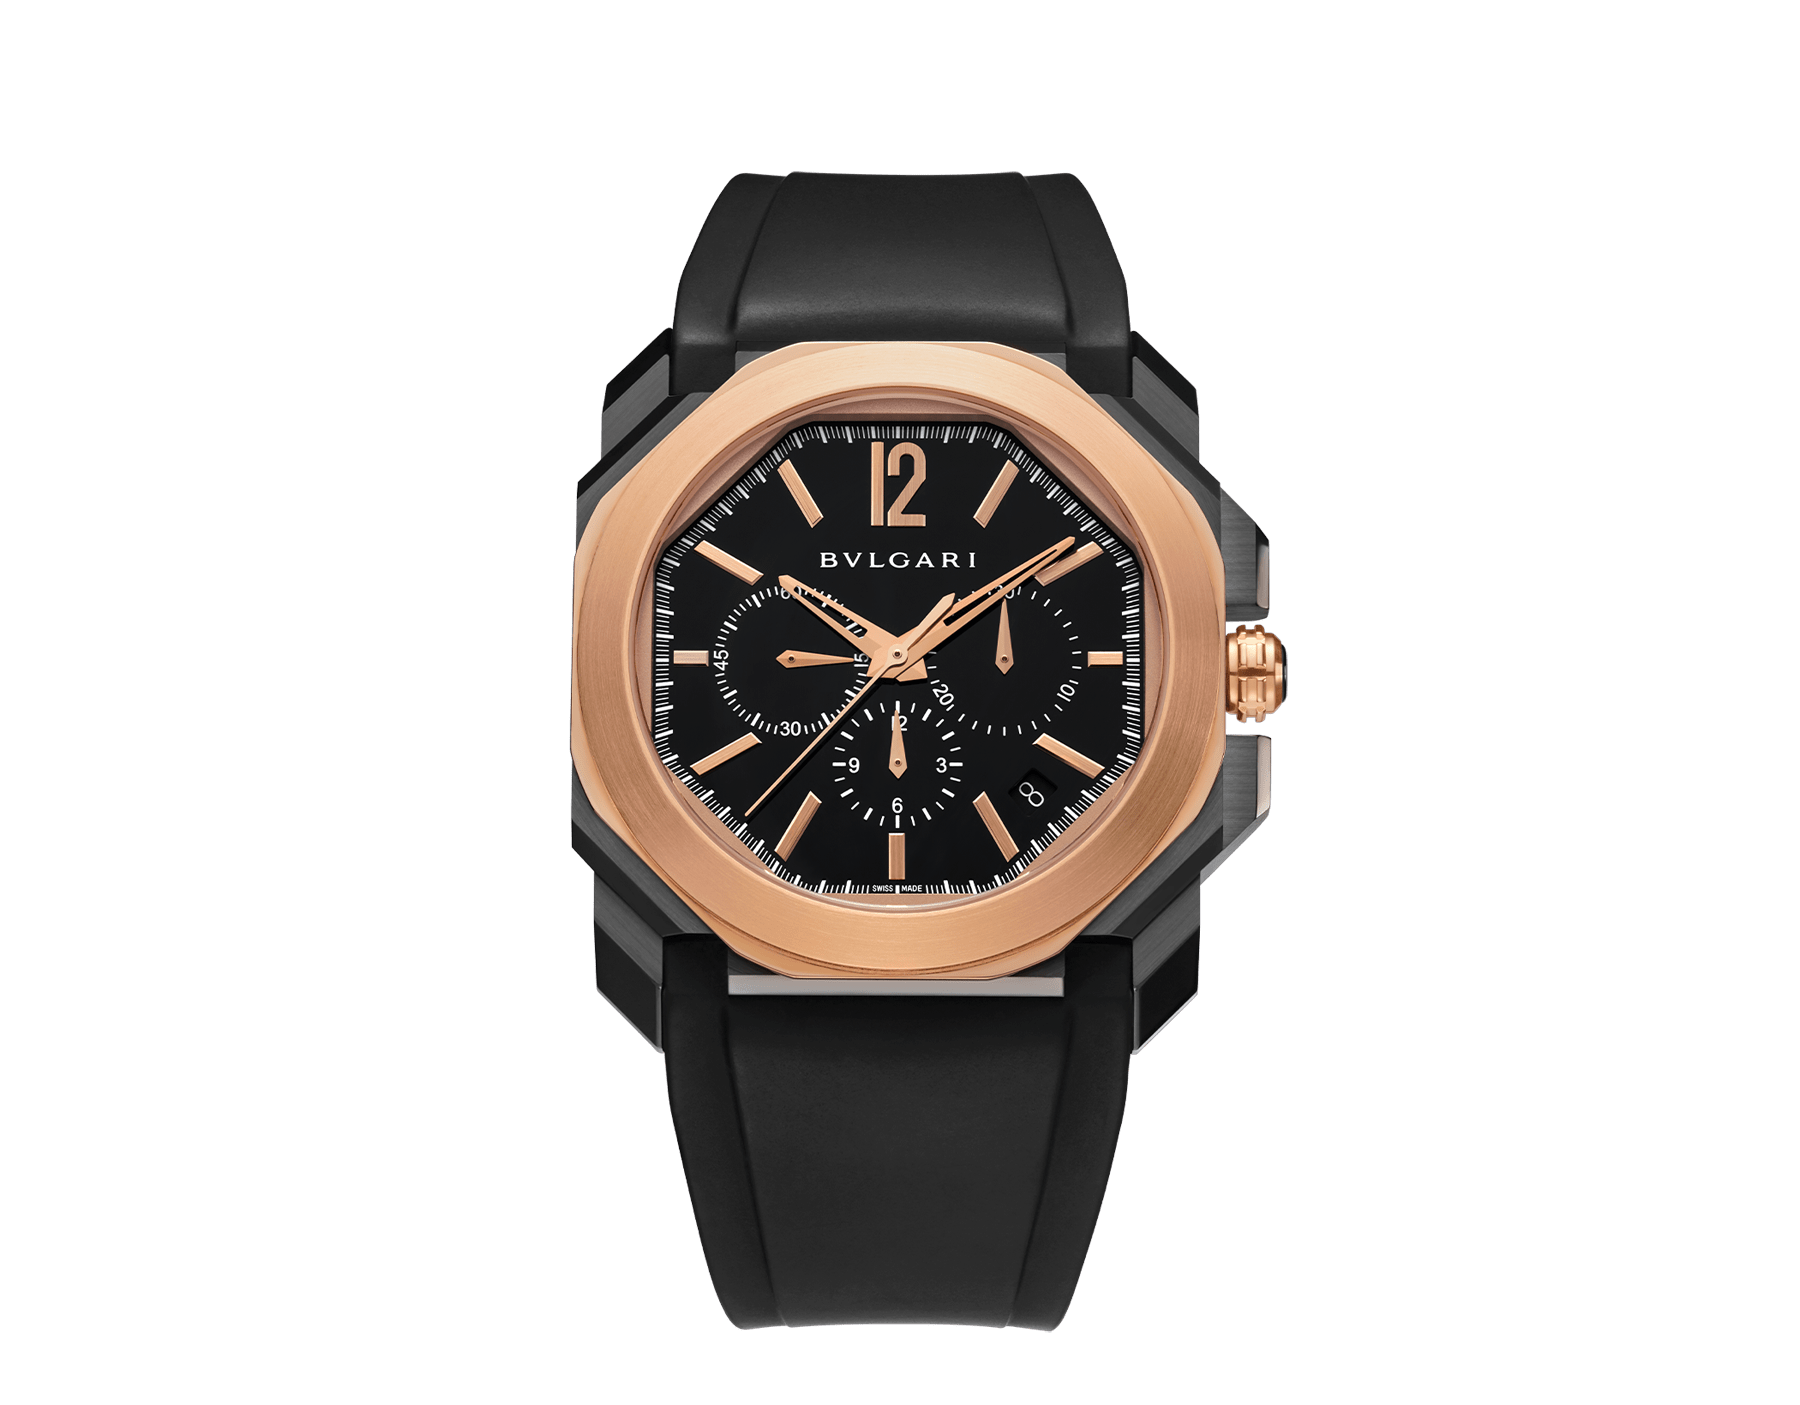 Octo watch with mechanical manufacture movement, high-frequency chronograph, automatic winding and date, stainless steel case treated with black Diamond Like Carbon, 18 kt rose gold bezel, black lacquered dial and black rubber bracelet. 102488 image 1